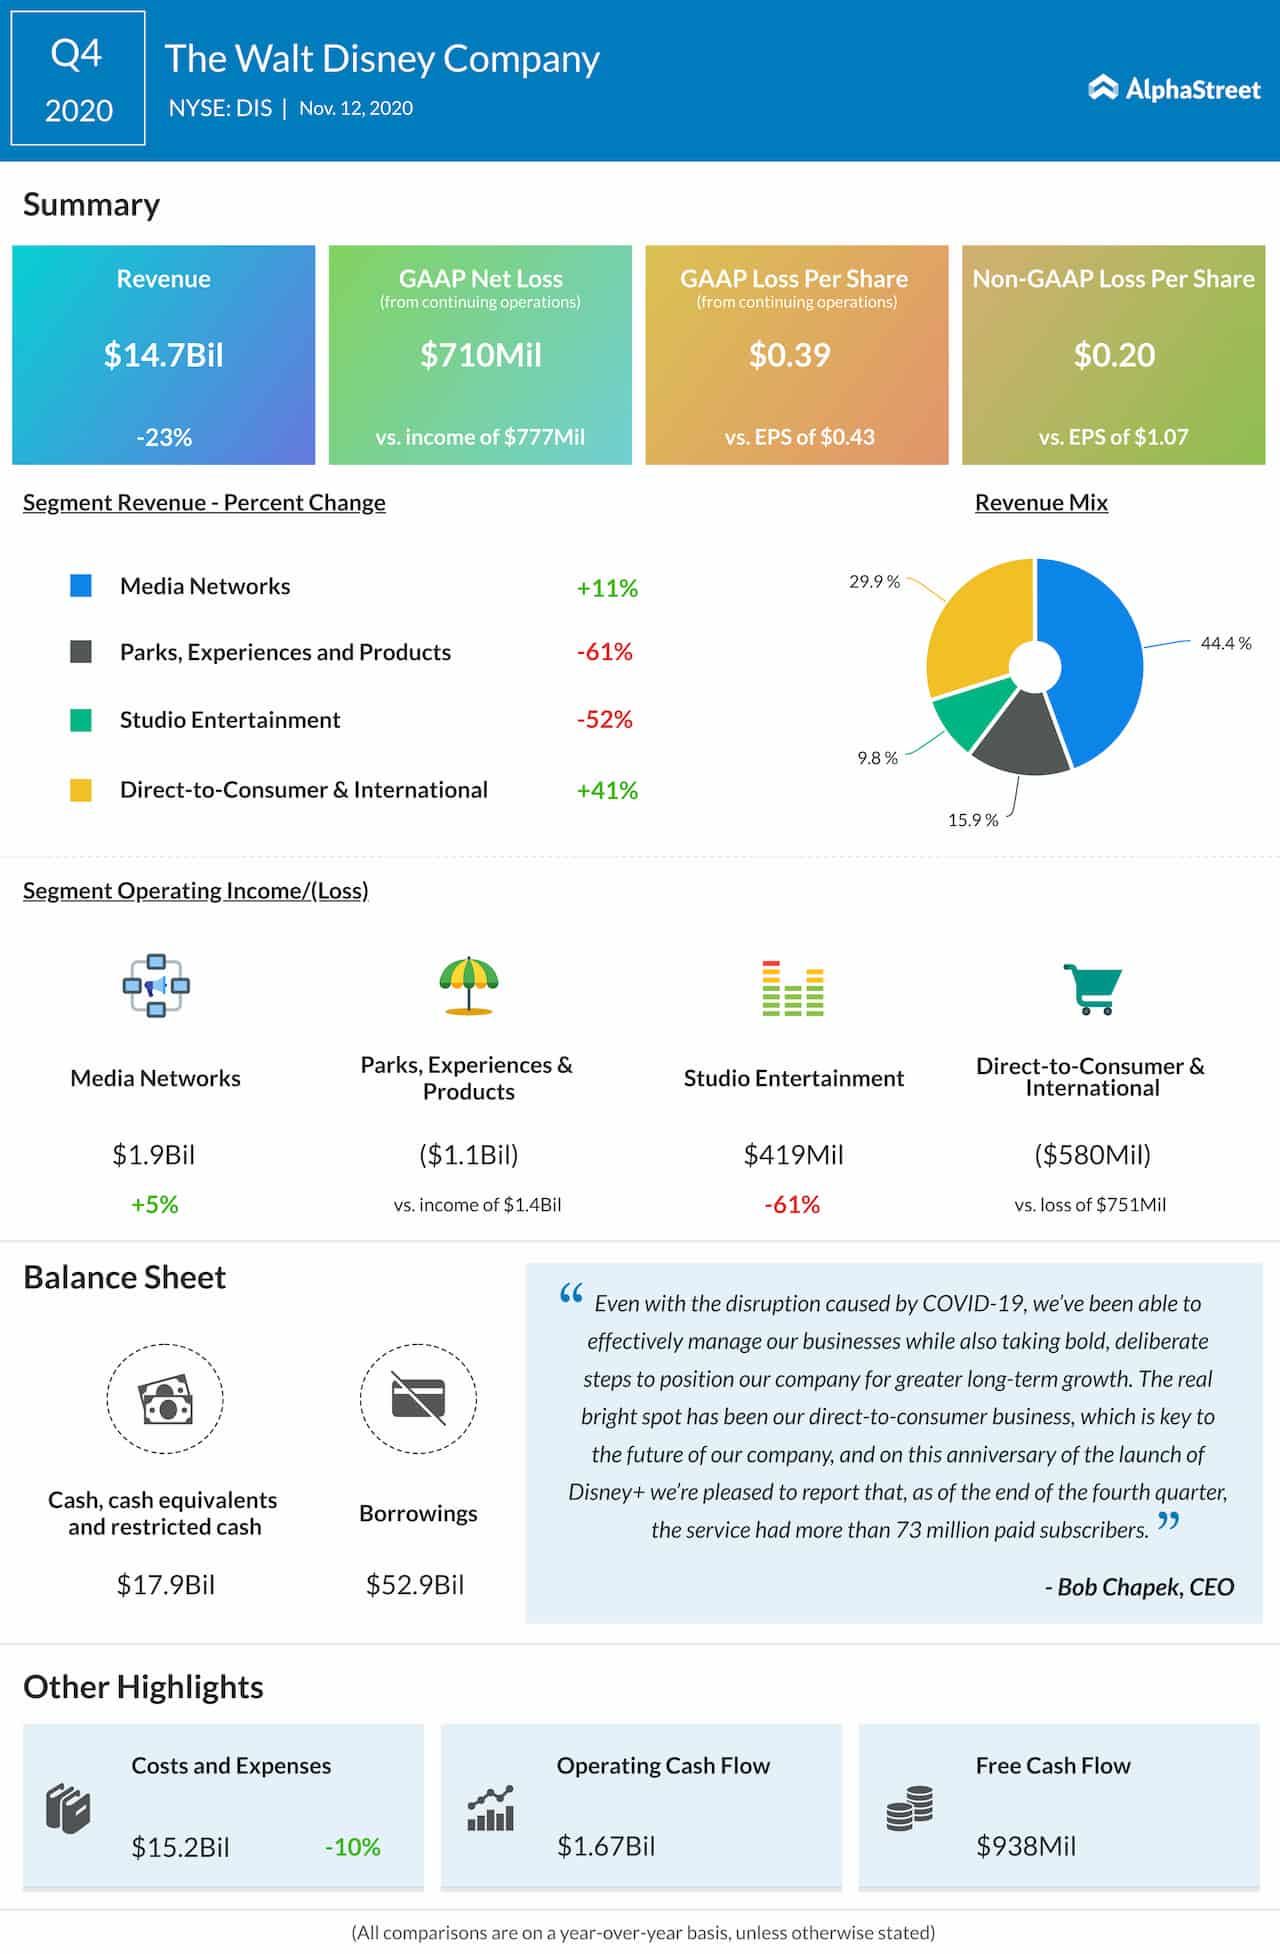 The Walt Disney Company Q4 2020 Earnings Infographic